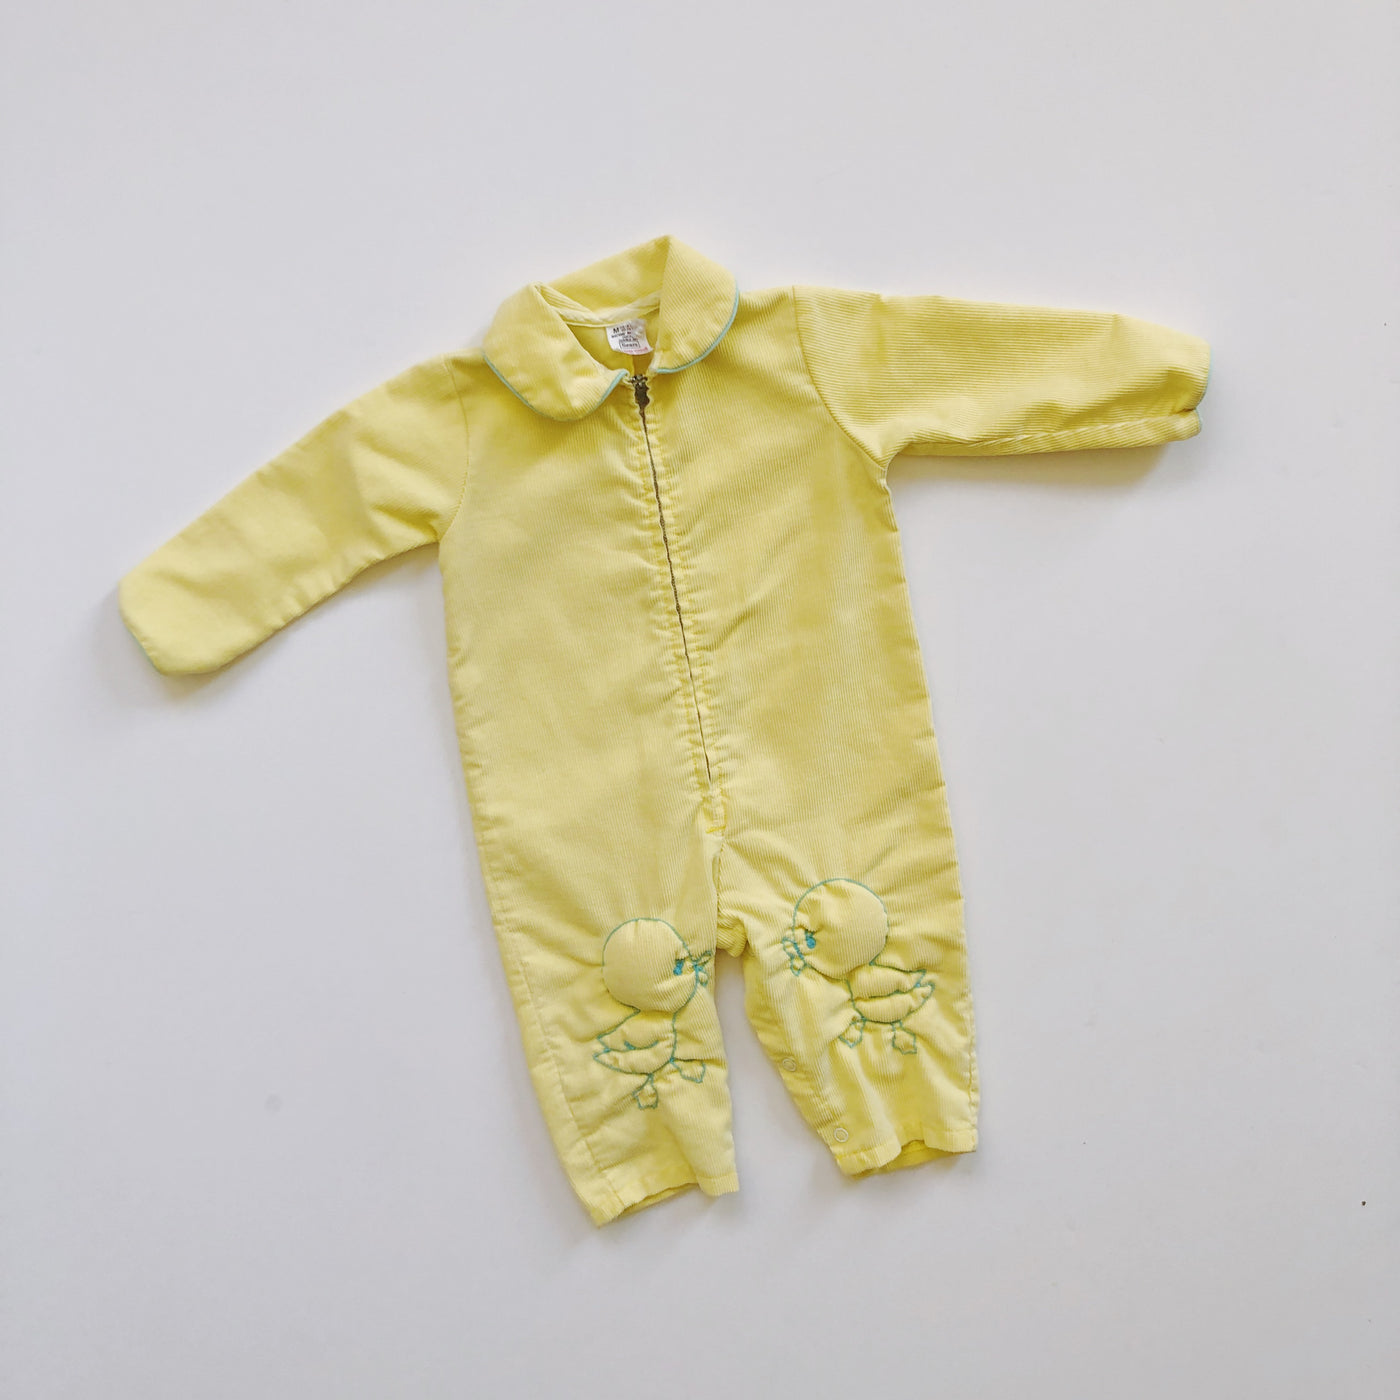 Vintage Sears Yellow Ducky Romper / Size 12-18M